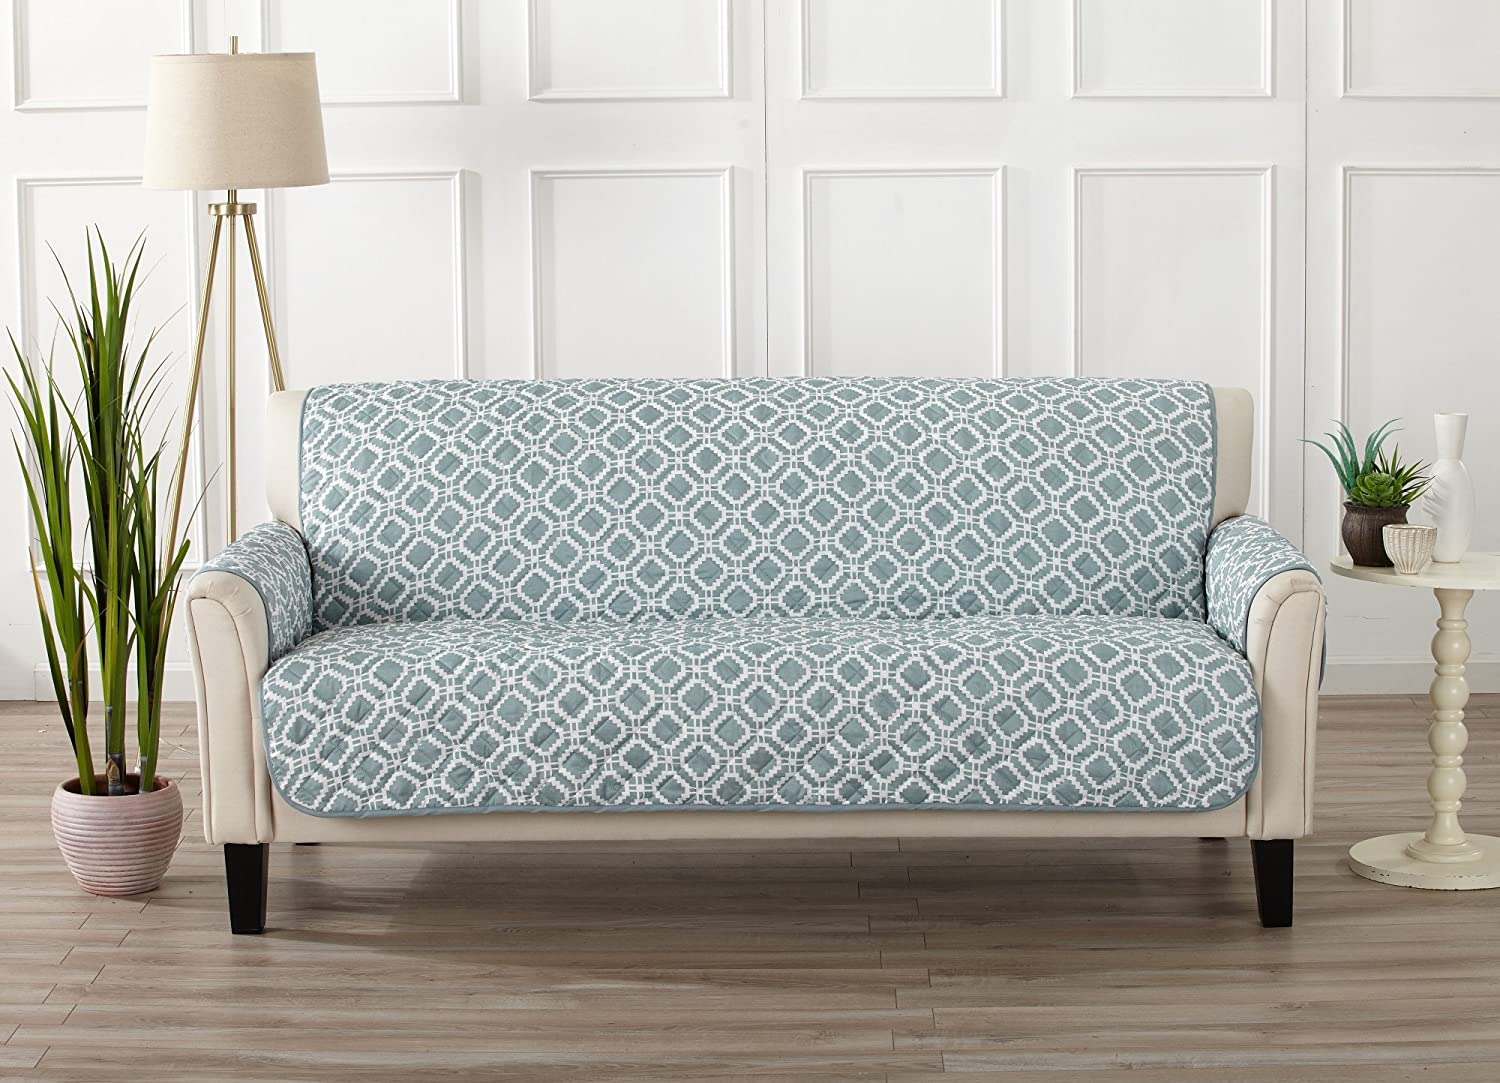 Amazon Com Modern Printed Reversible Stain Resistant Furniture